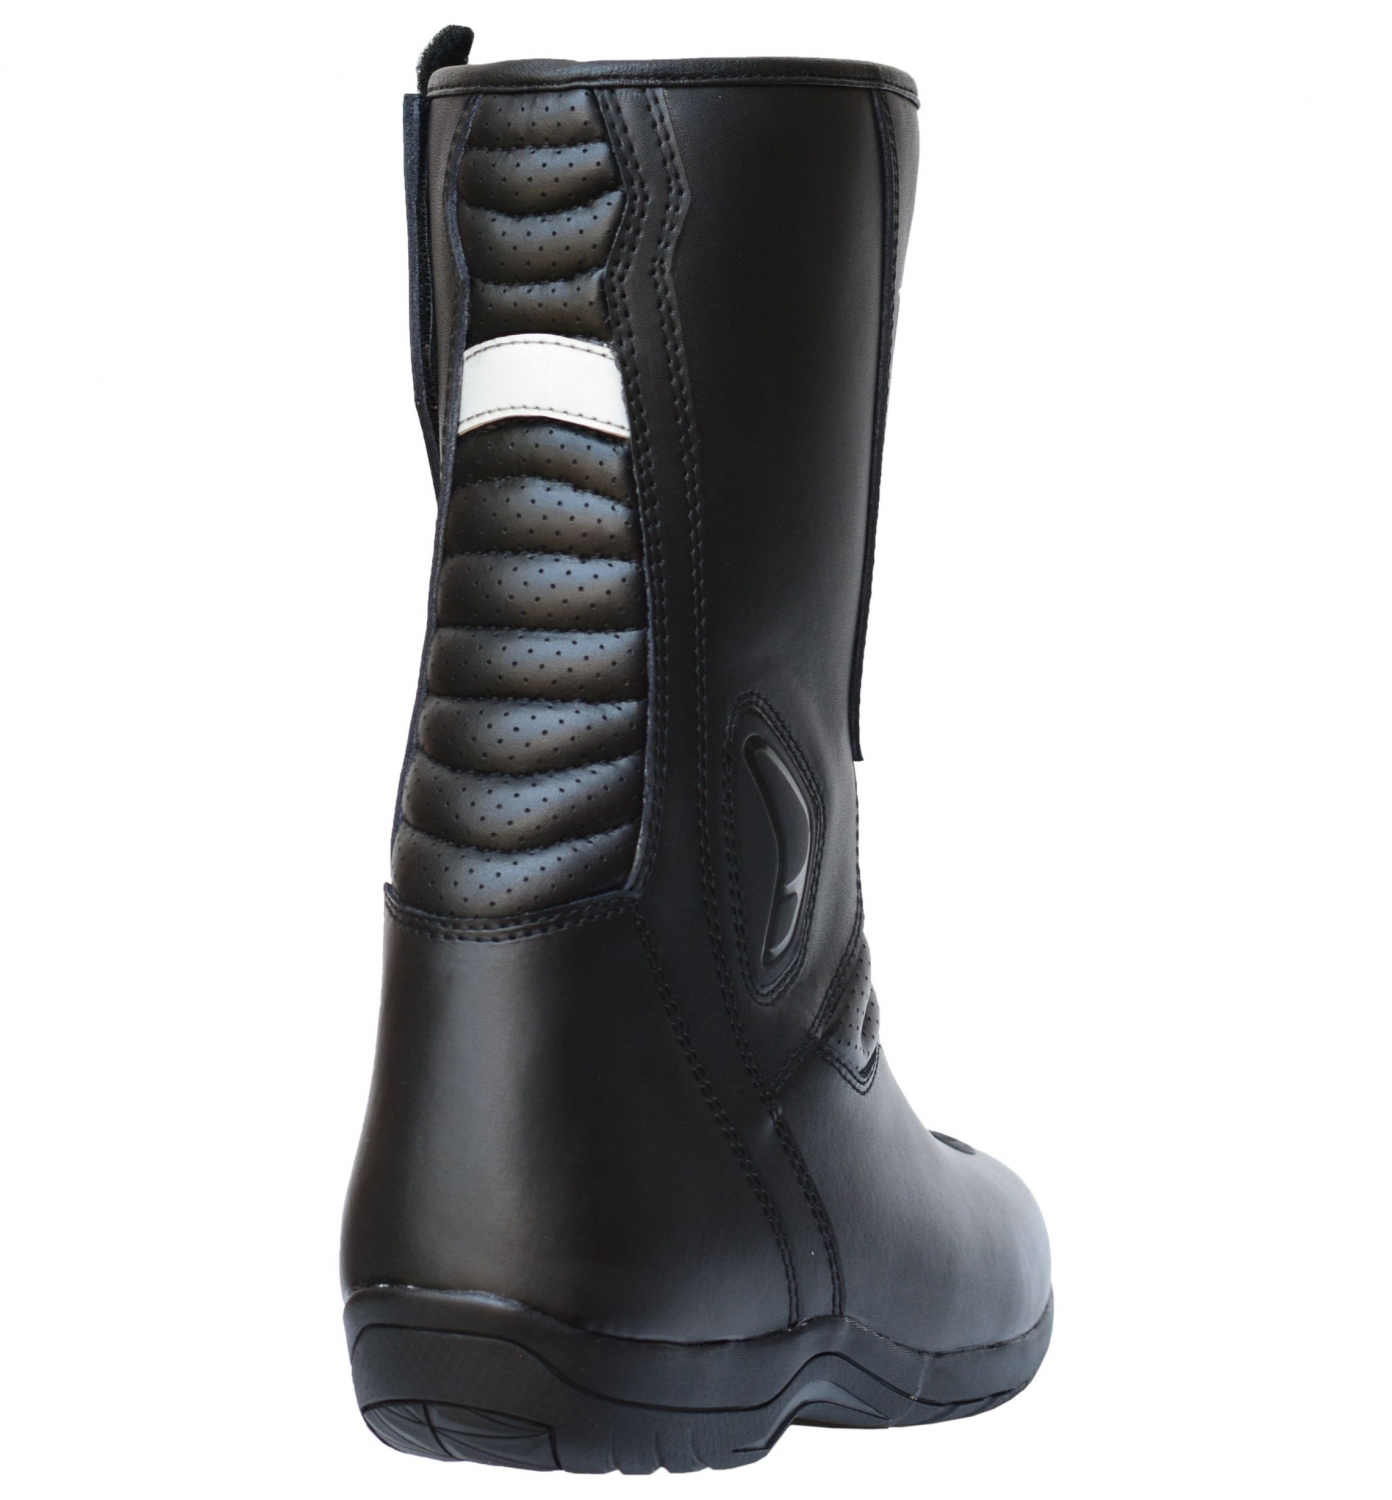 Touring Boots BEX-510 back